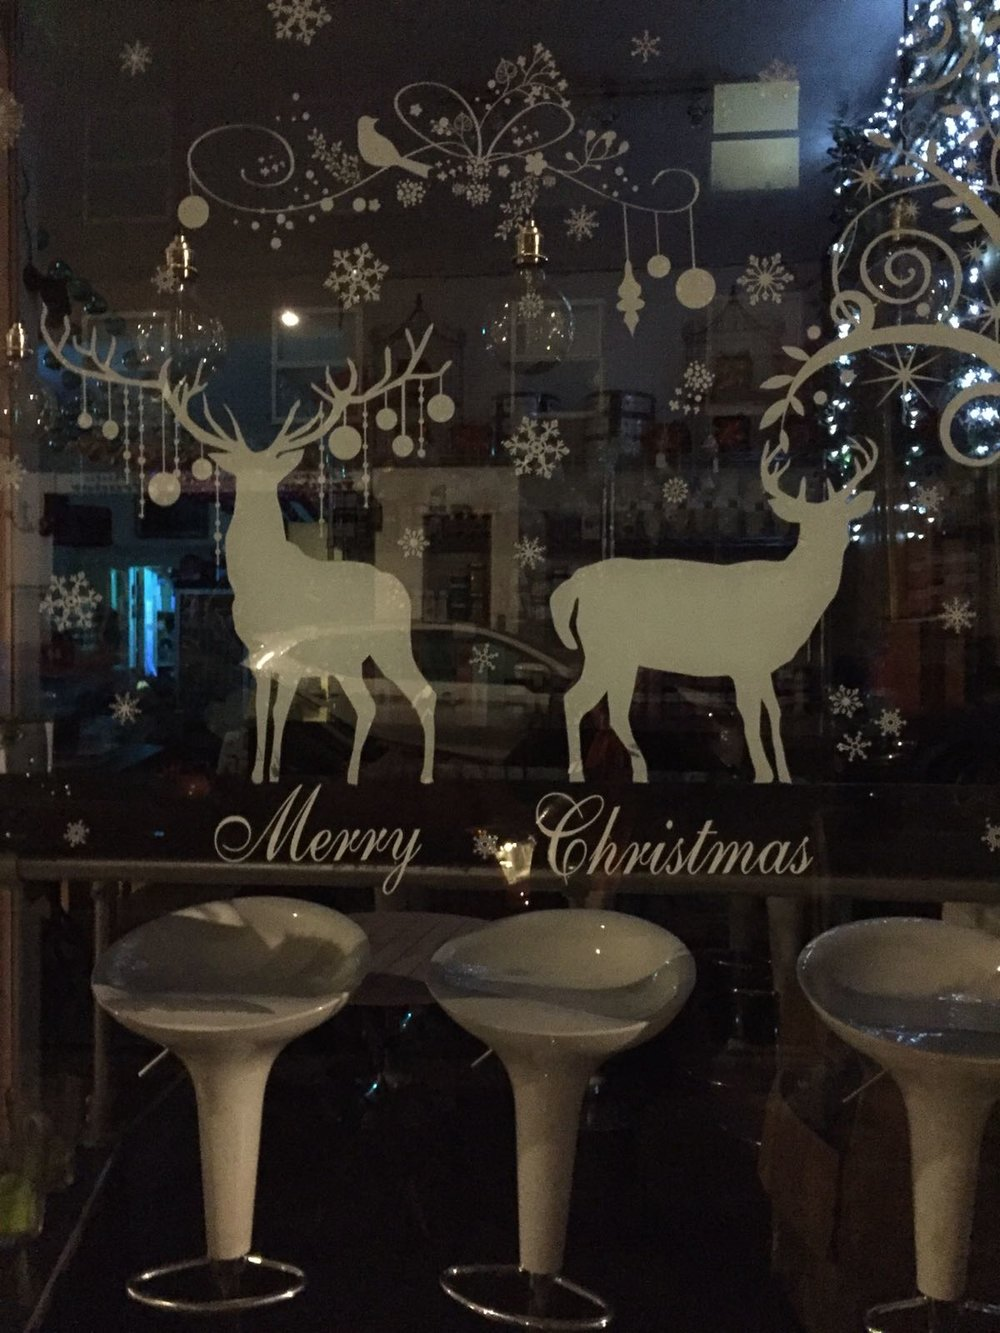 truffles deli window